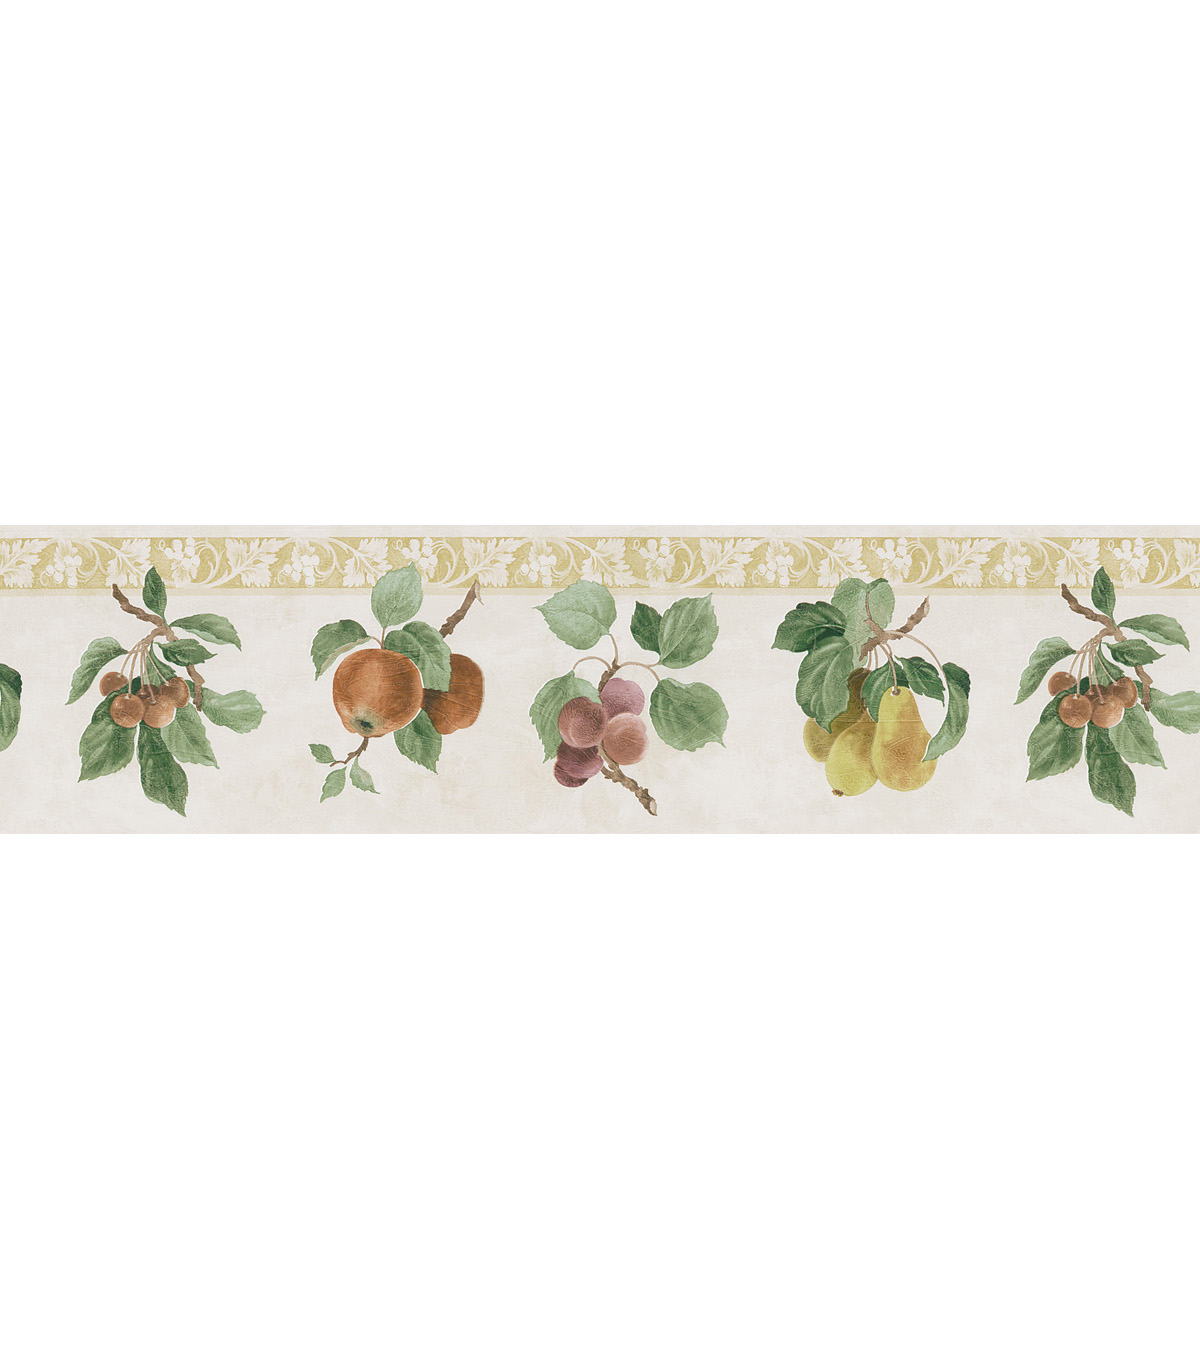 Fruit Print Wallpaper Border GreenFruit Print Wallpaper Border Green 1200x1360